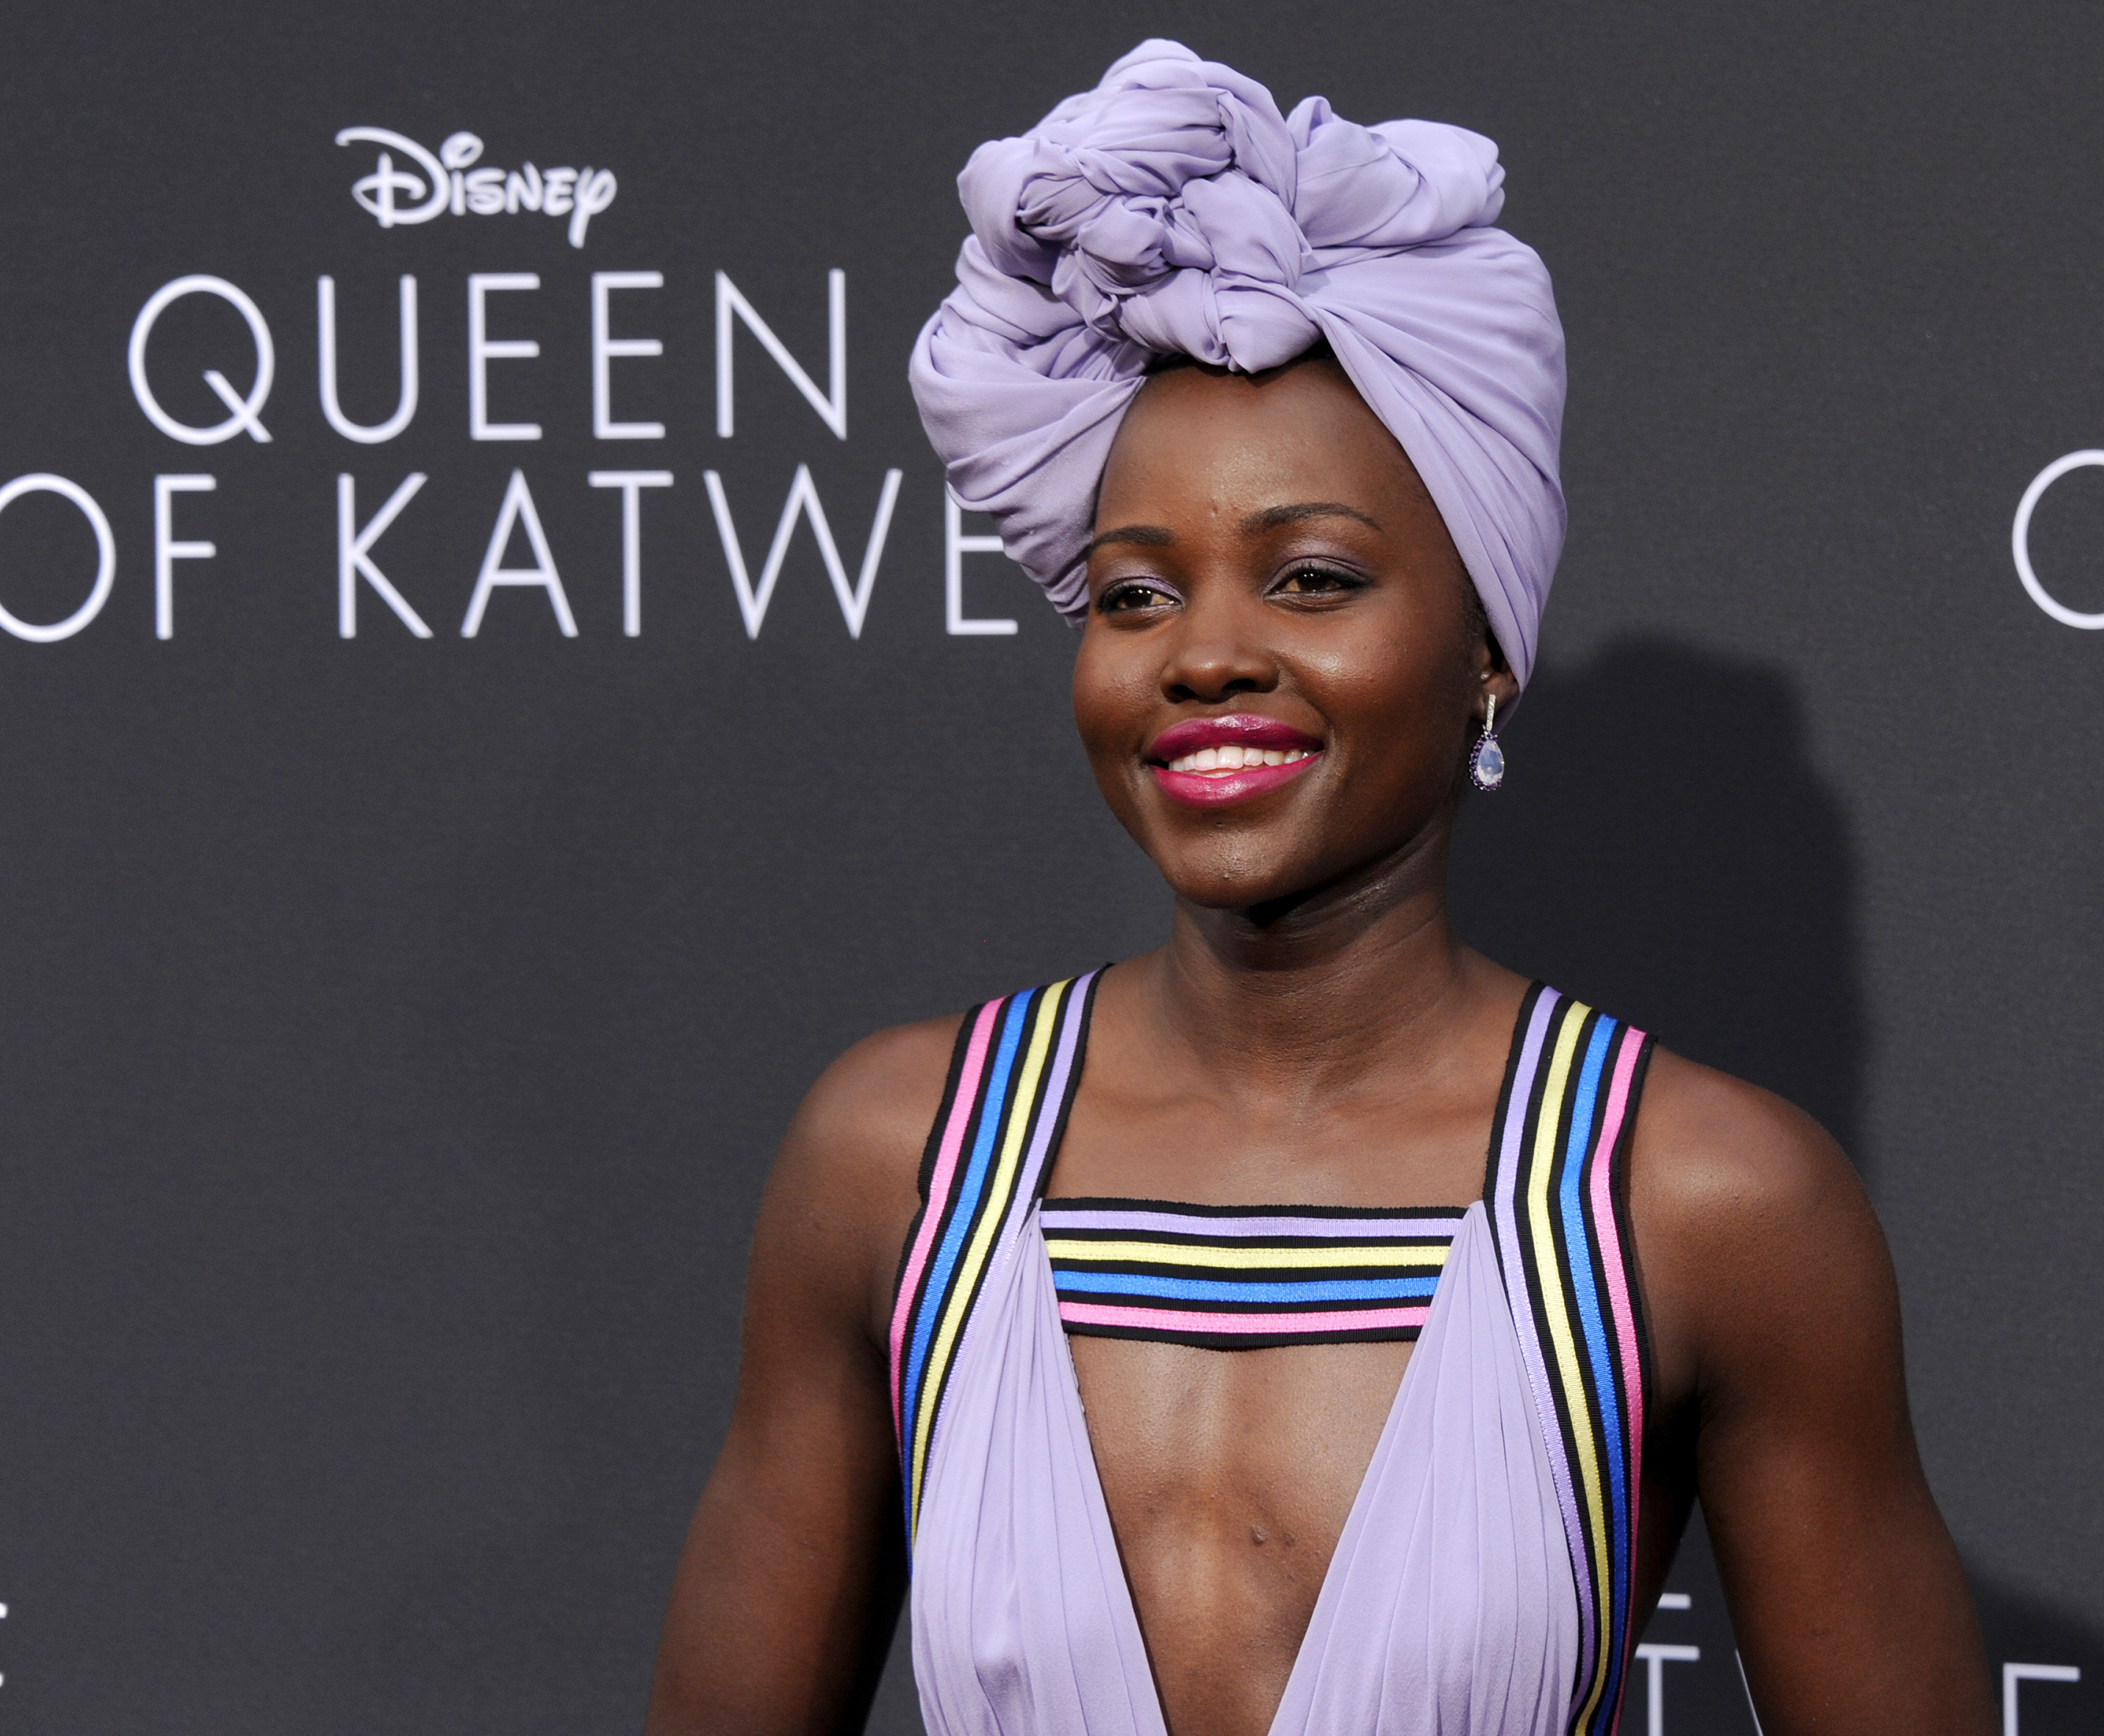 HOLLYWOOD, CA - SEPTEMBER 20:  Actress Lupita Nyong'o arrives at the premiere of Disney's 'Queen Of Katwe' at the El Capitan Theatre on September 20, 2016 in Hollywood, California.  (Photo by Gregg DeGuire/WireImage)